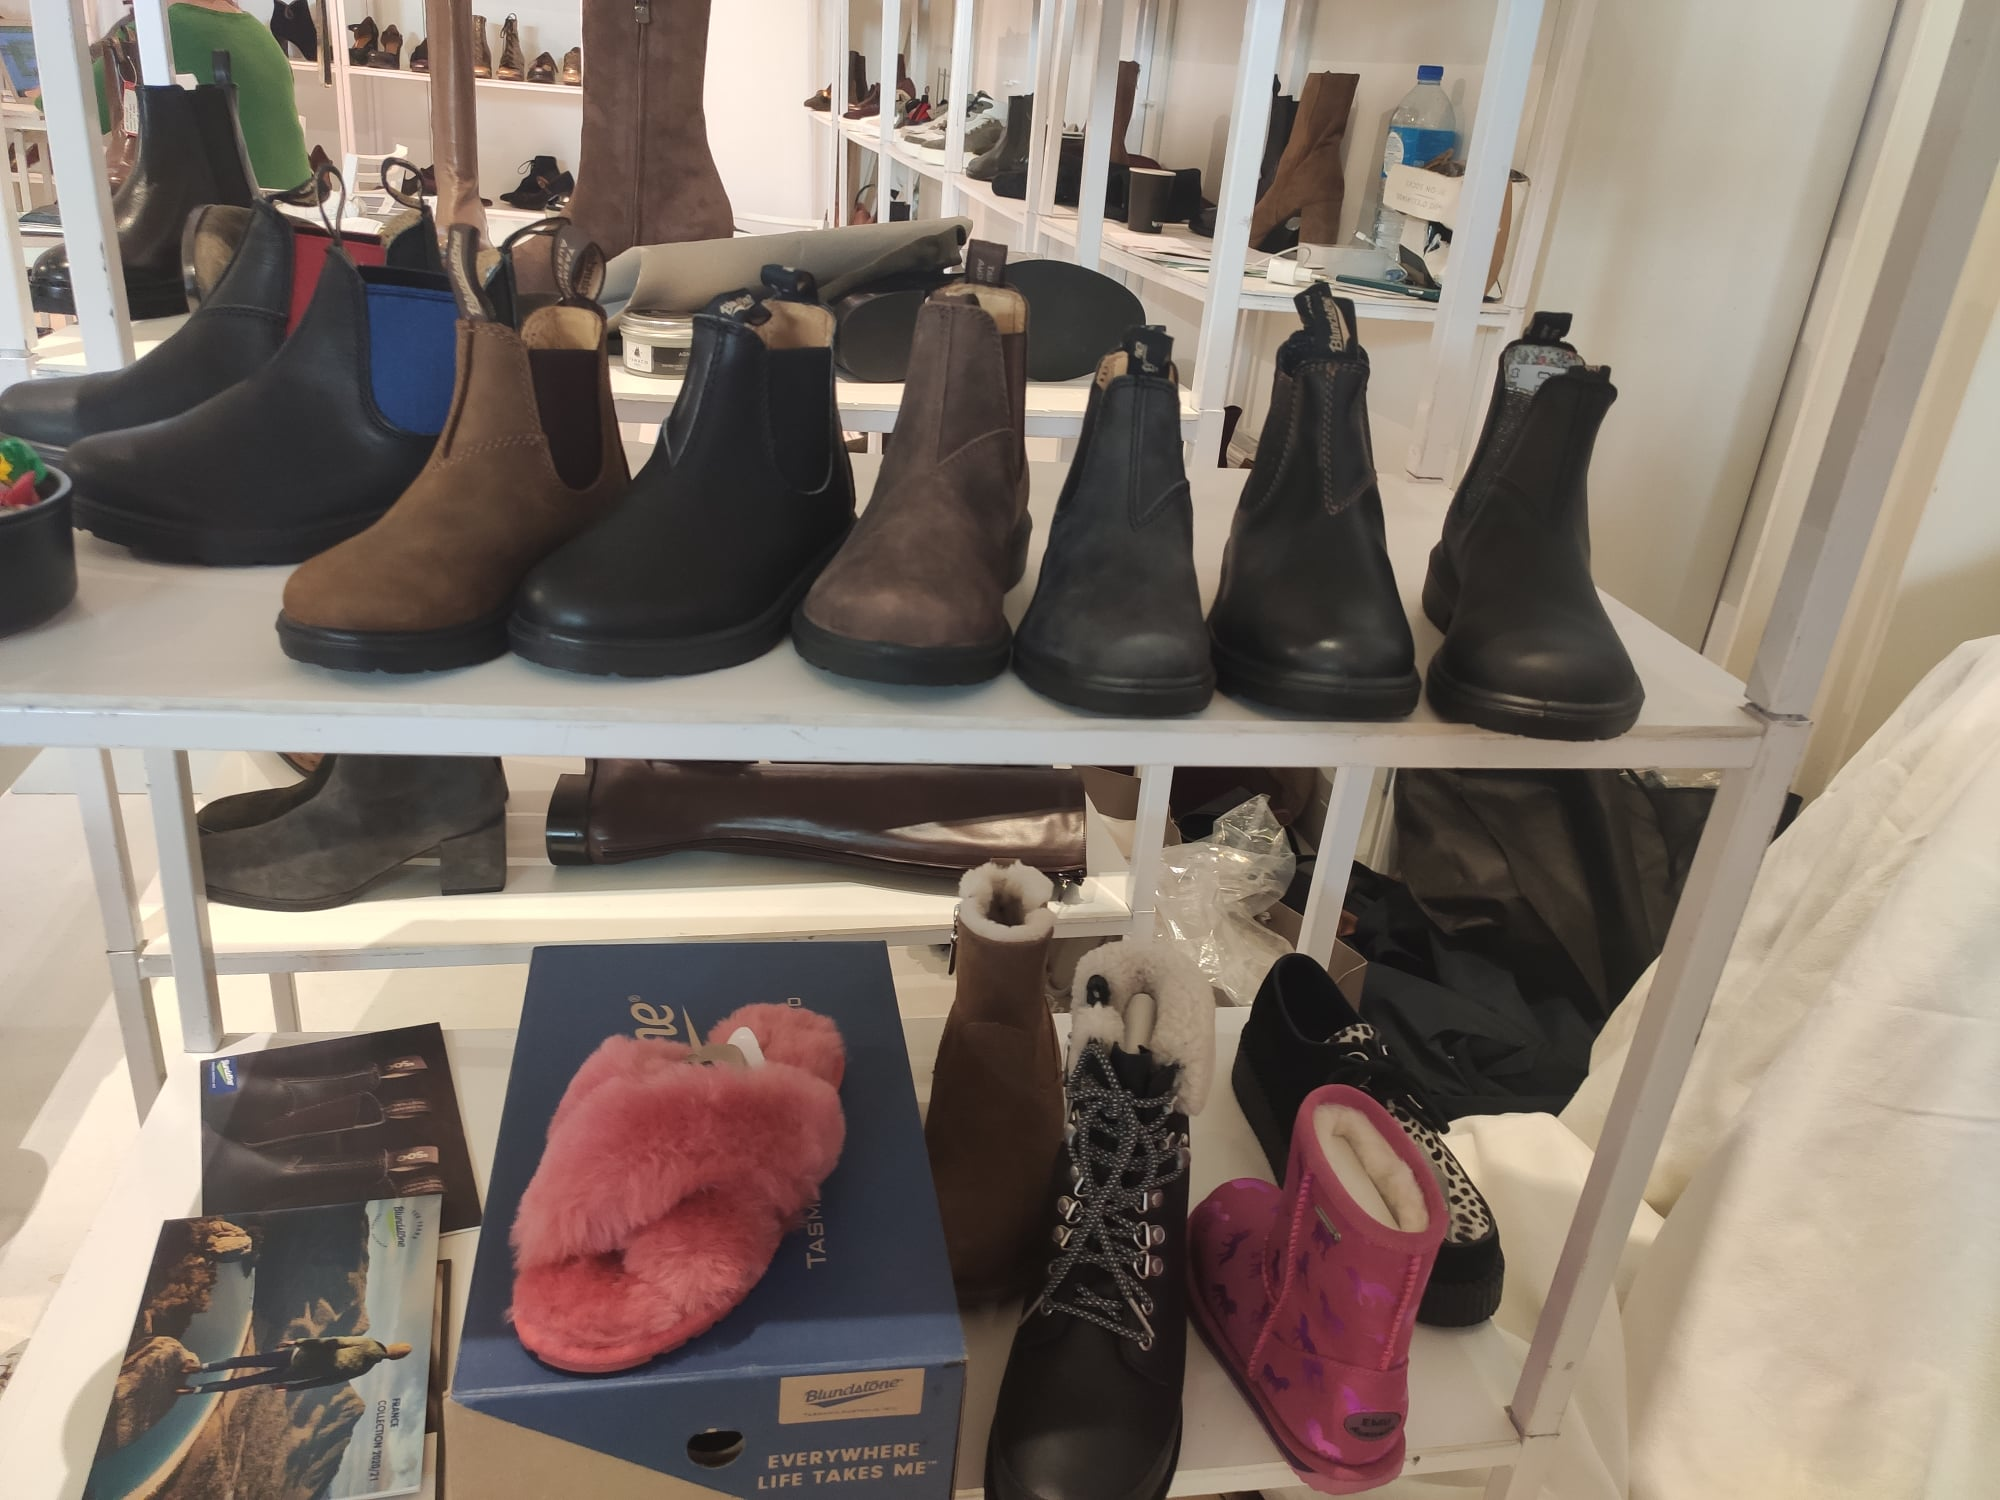 Chaussures et chaussons (Héritage Diffusion)